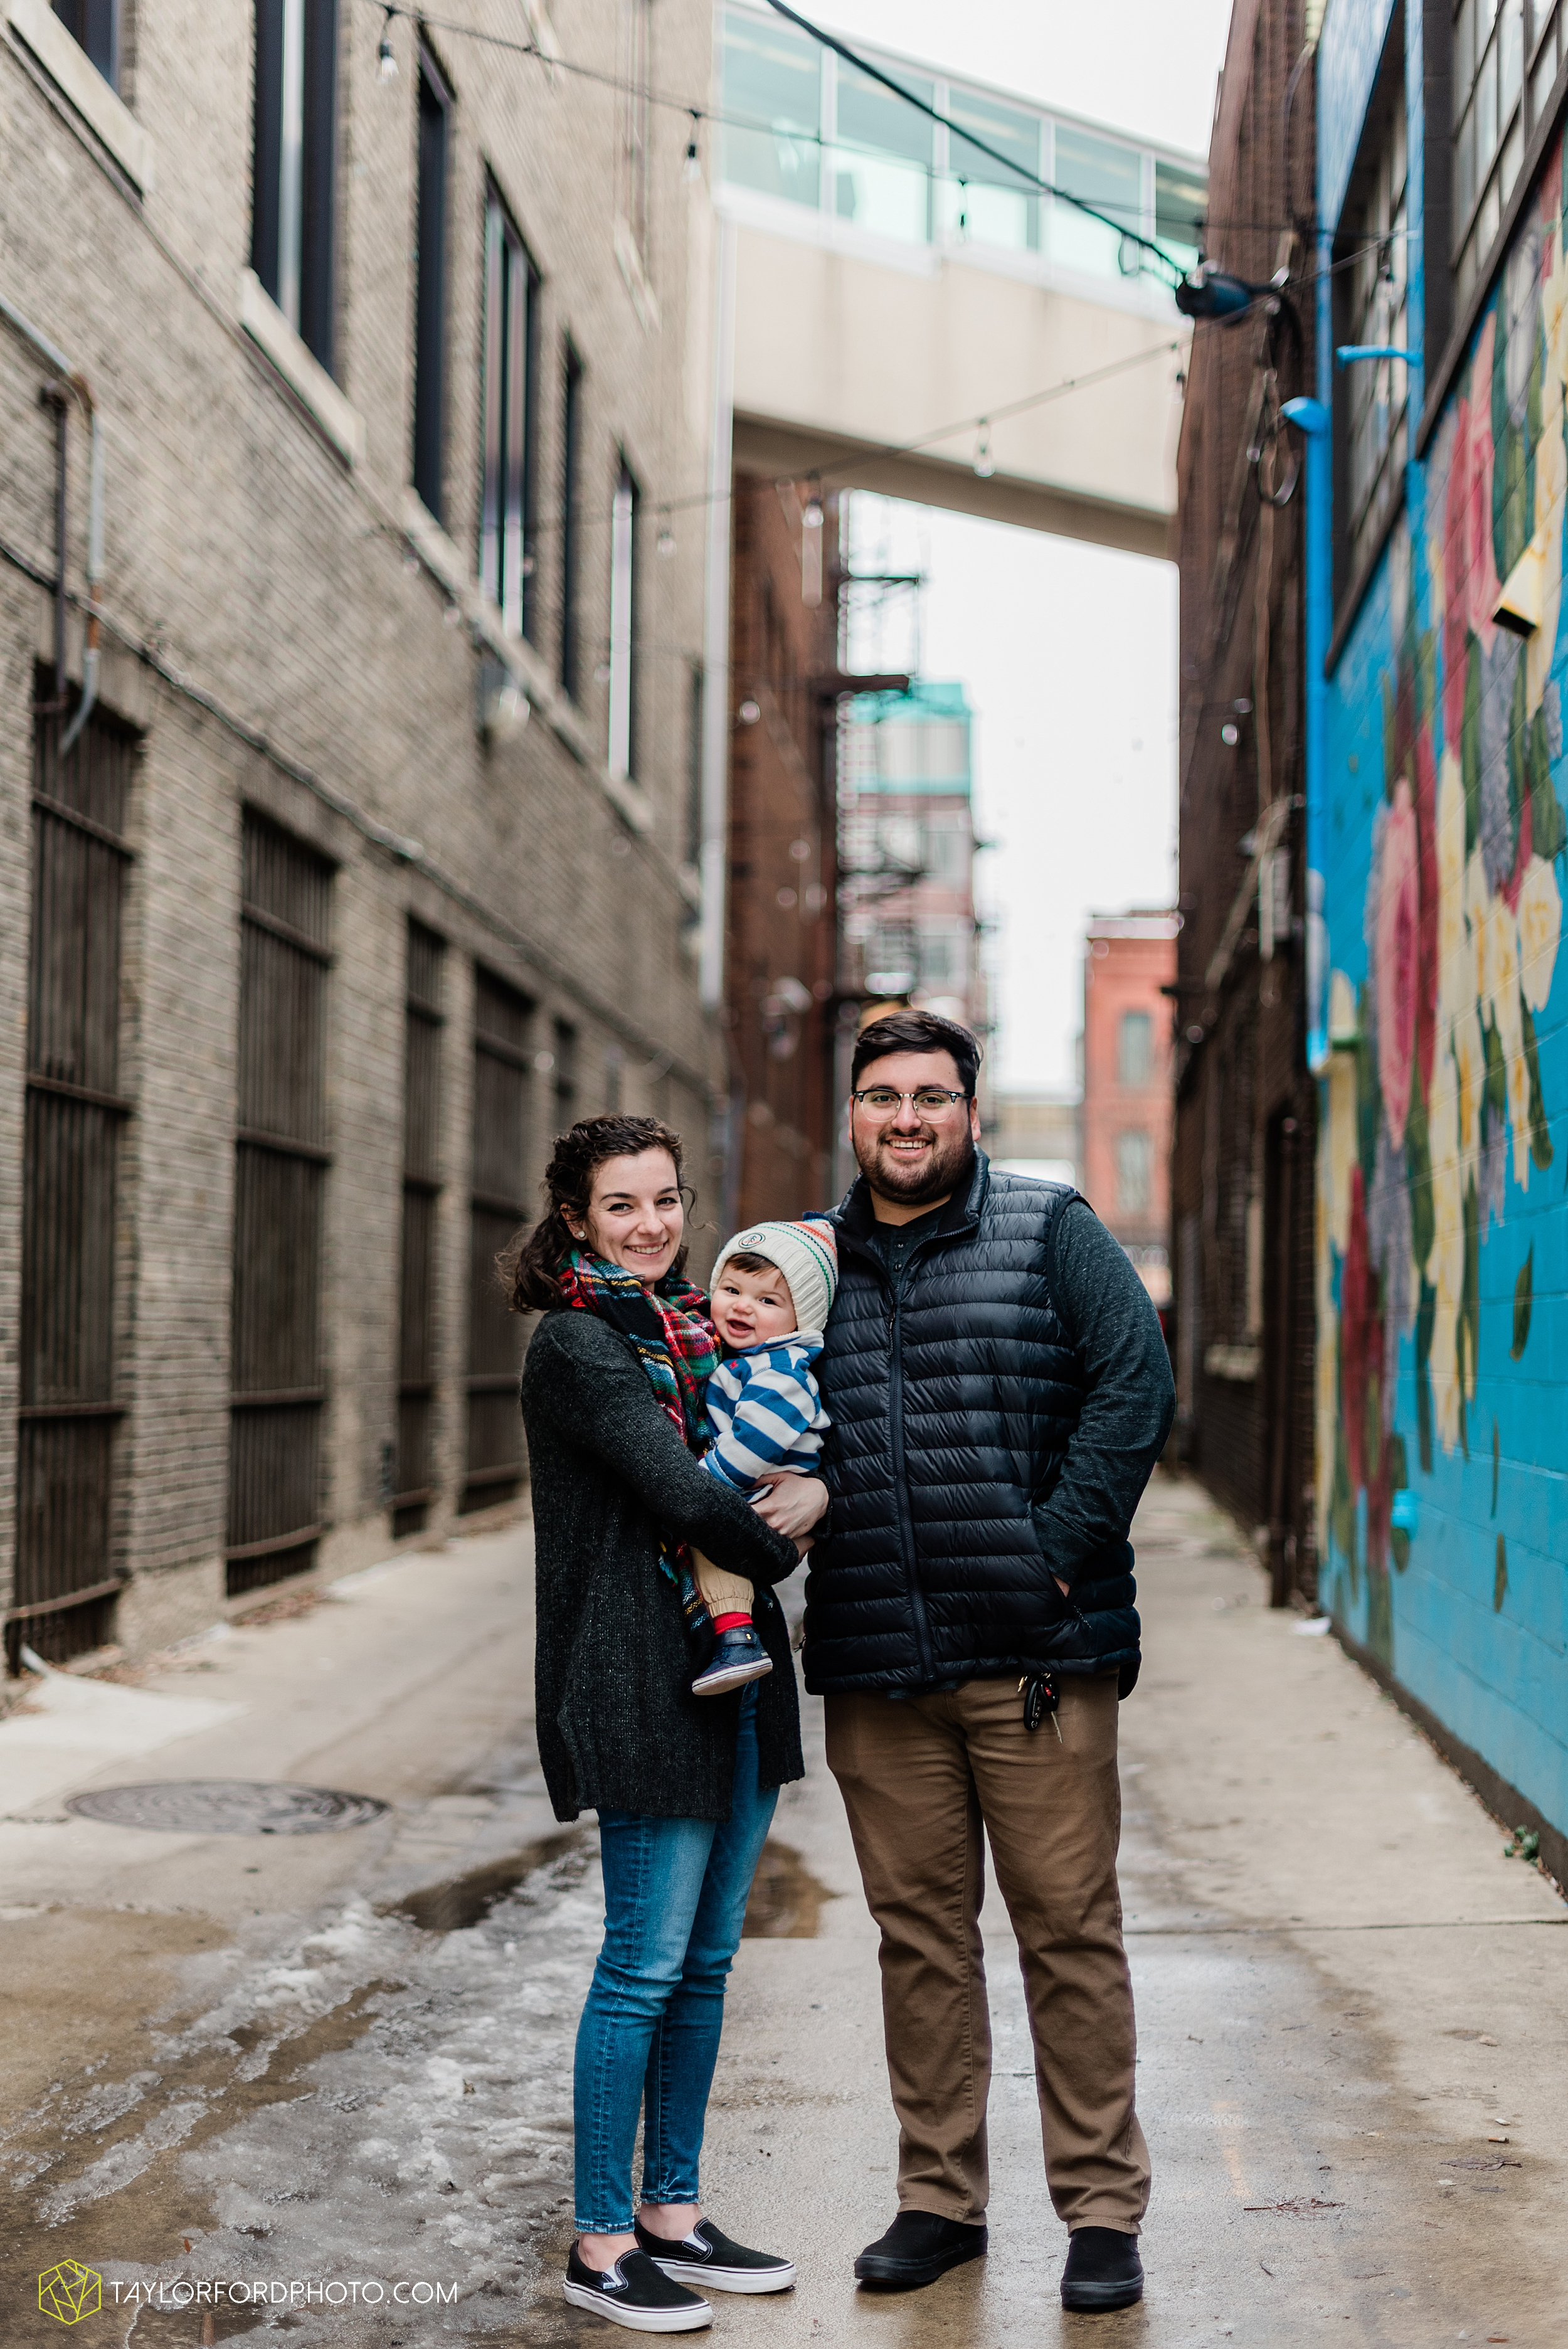 brenna-jose-fort-wayne-indiana-engagement-family-child-downtown-river-greenway-photography-taylor-ford-hirschy-photographer_2301.jpg